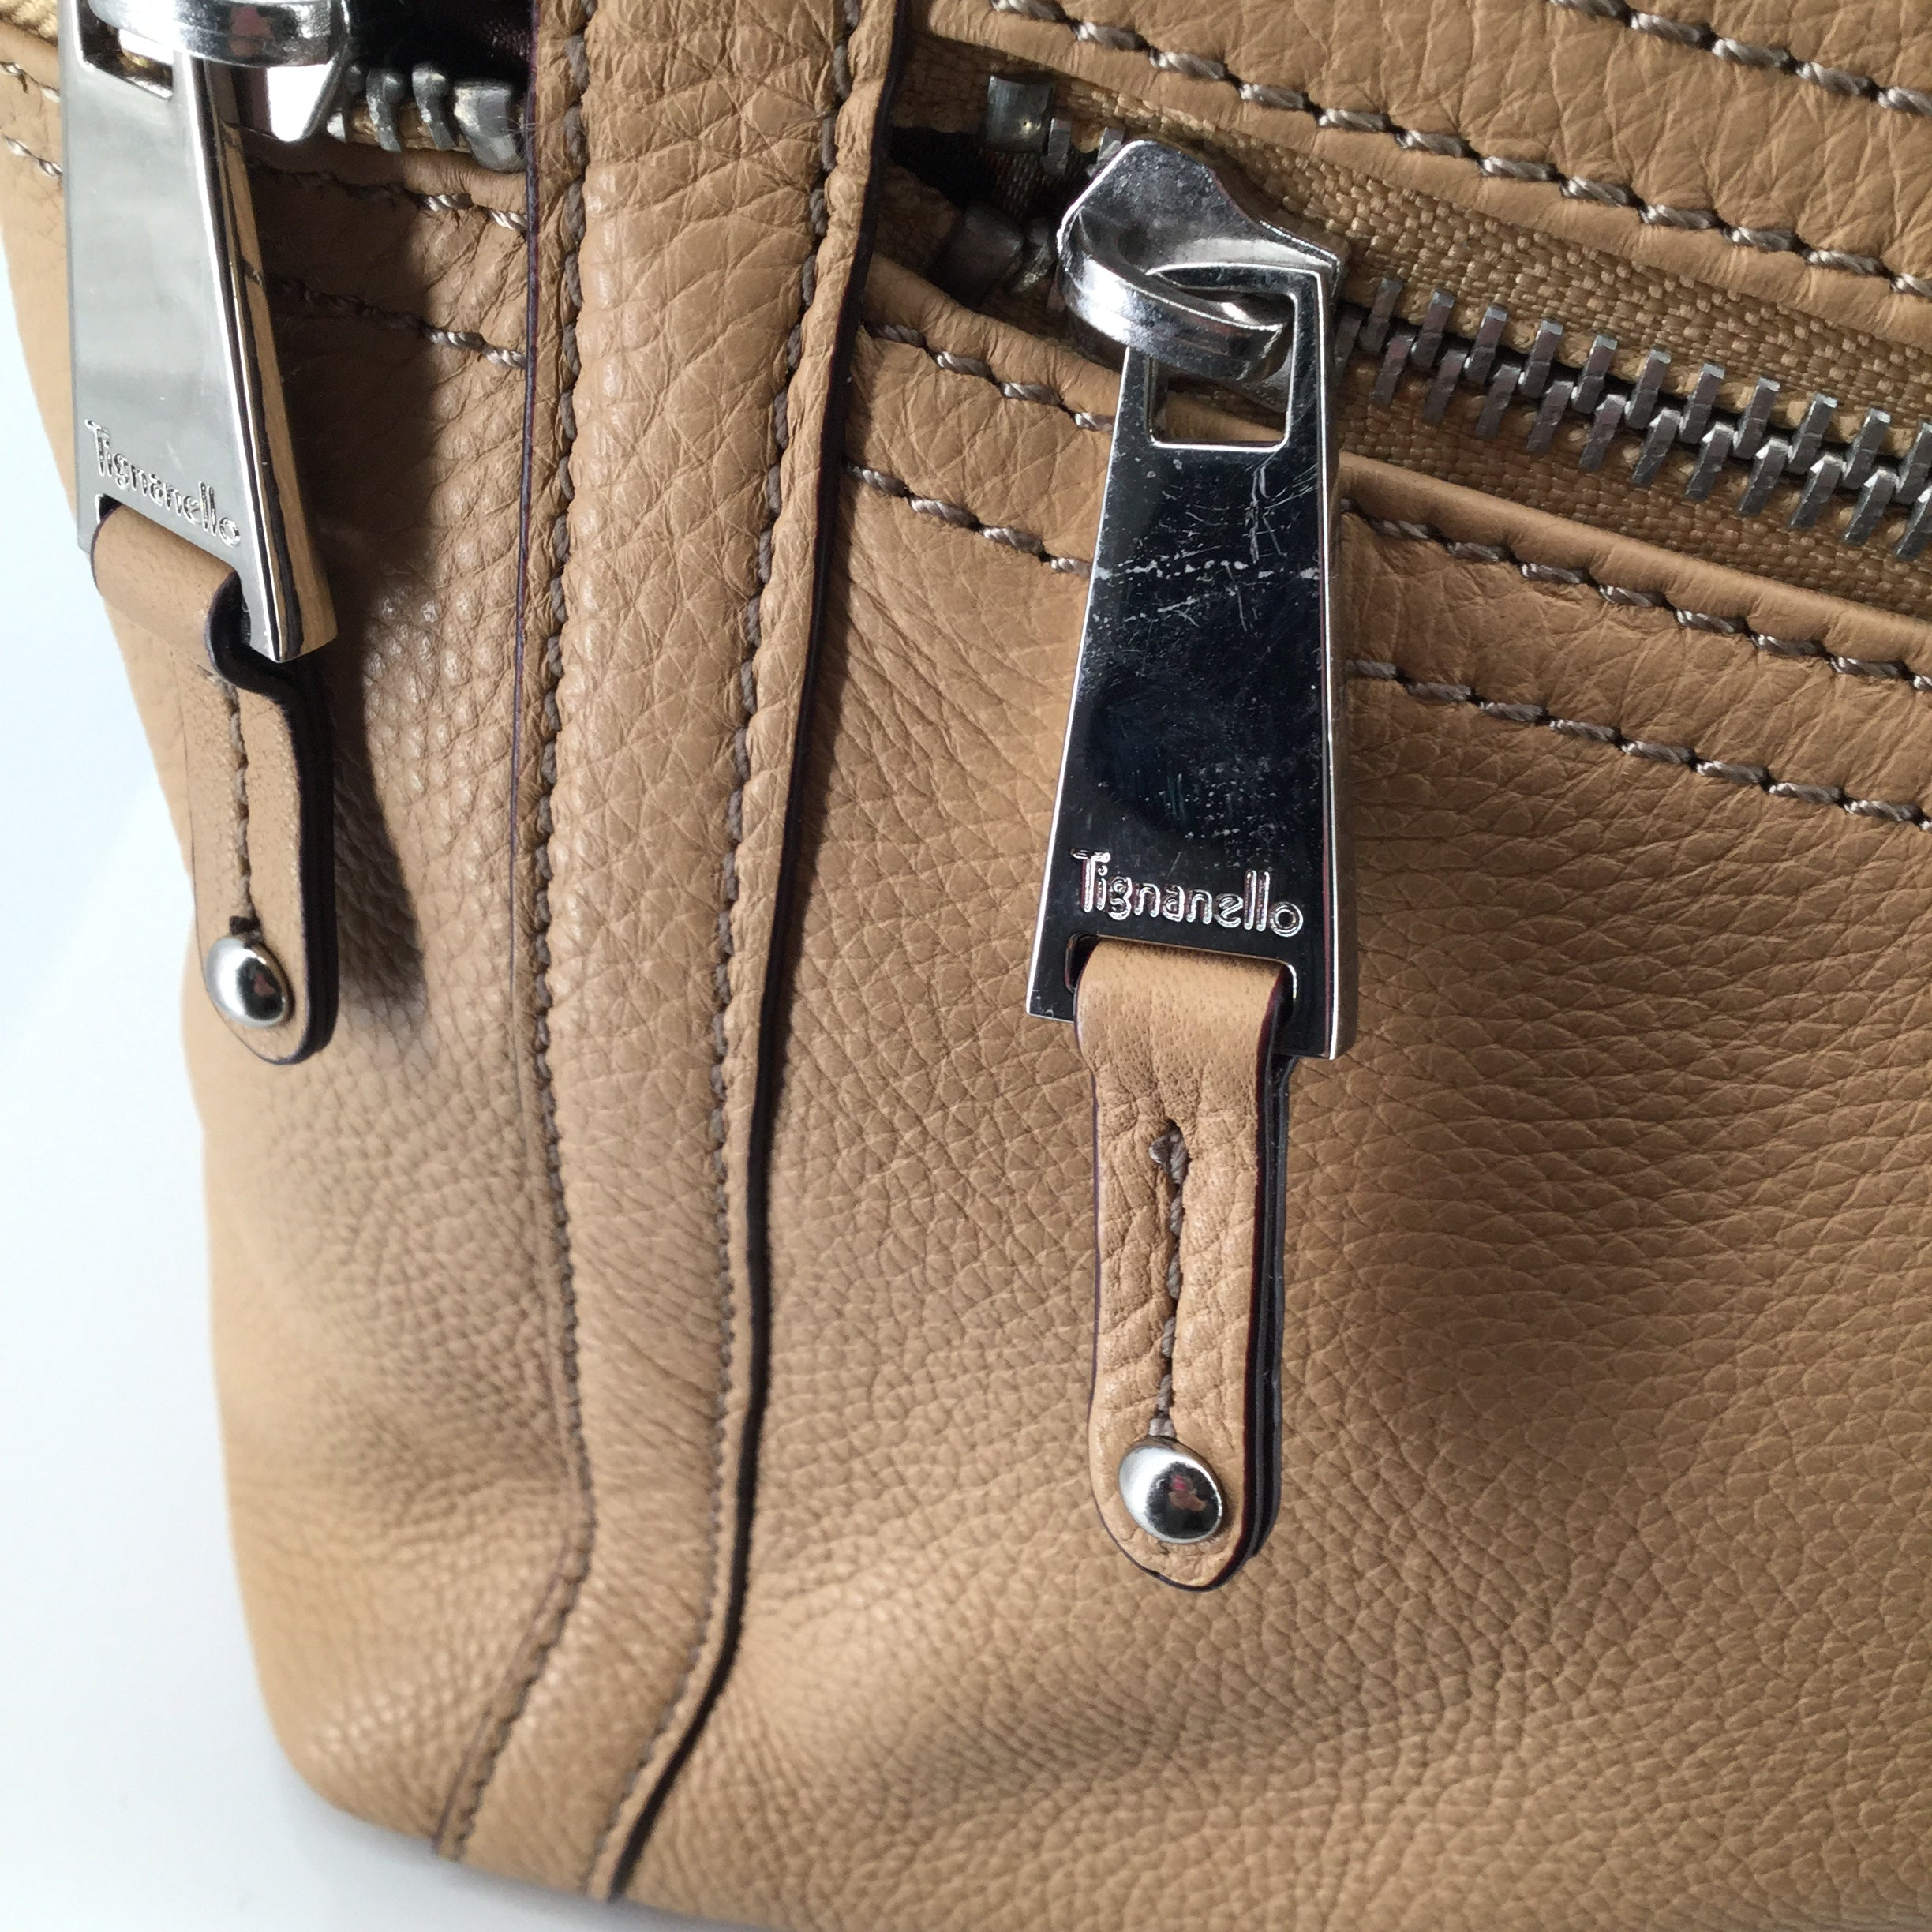 Tignanello  Purses Handbag Size:medium - NEW - TIGNANELLO PURSE STILL WITH TAGS ON IT.  GREAT ALL-PURPOSE CAMEL COLOR, USE ANY SEASON!  MULTIPLE EXTERIOR POCKETS,  SILVER HARDWARE. TWO LARGE INTERIOR COMPARTMENTS, WITH CENTER ZIPPER AREA.  SIDE POCKETS TOO.